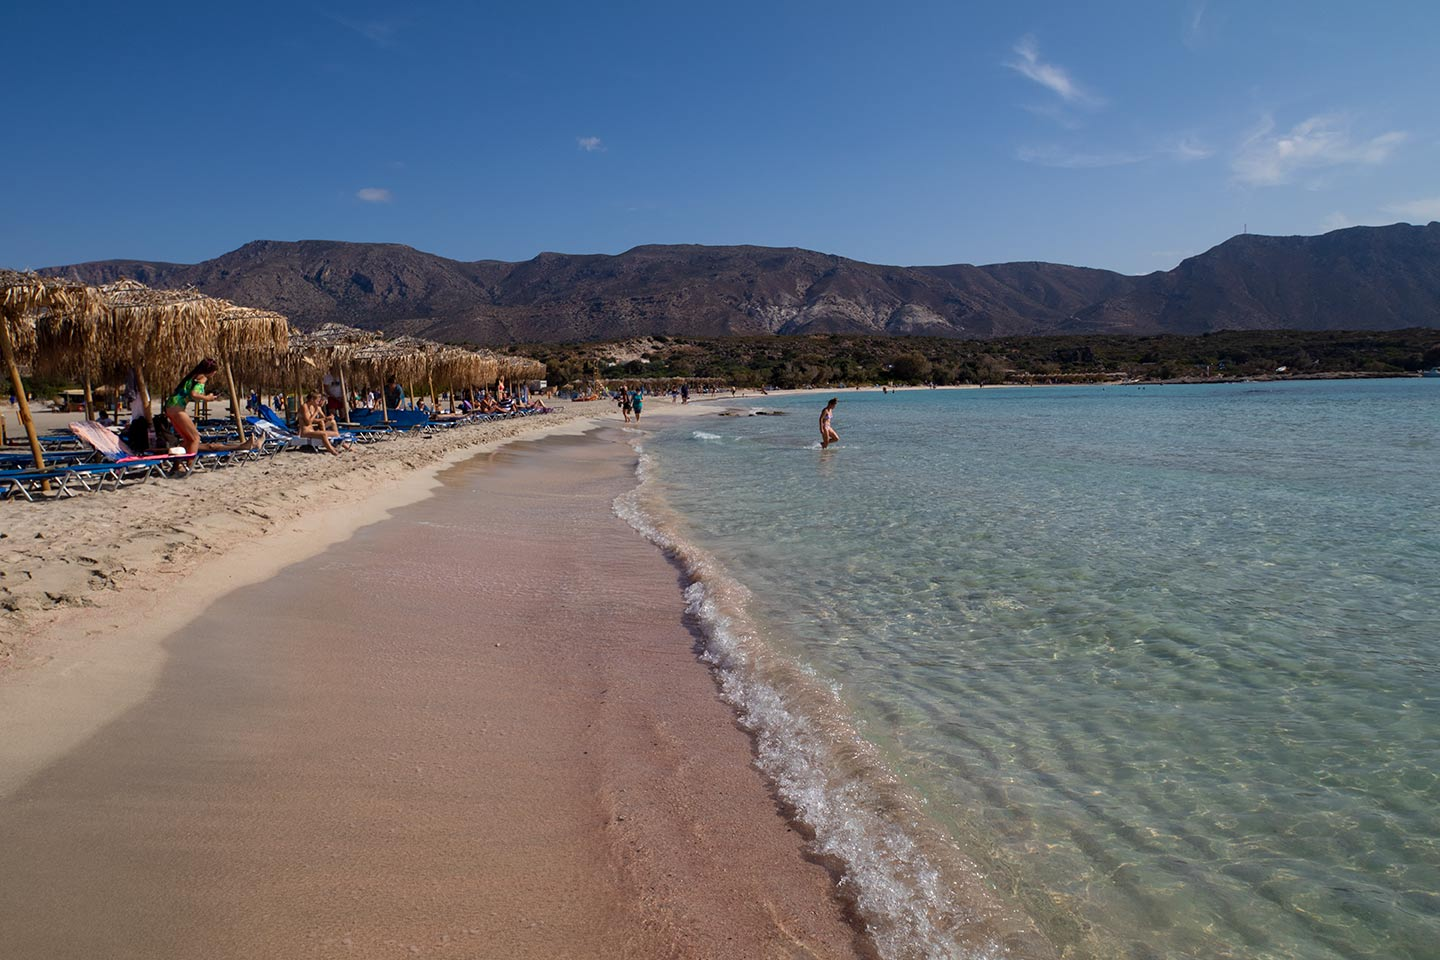 Elafonisi beach Image of the famous ELafonissi pink sand beach in Crete